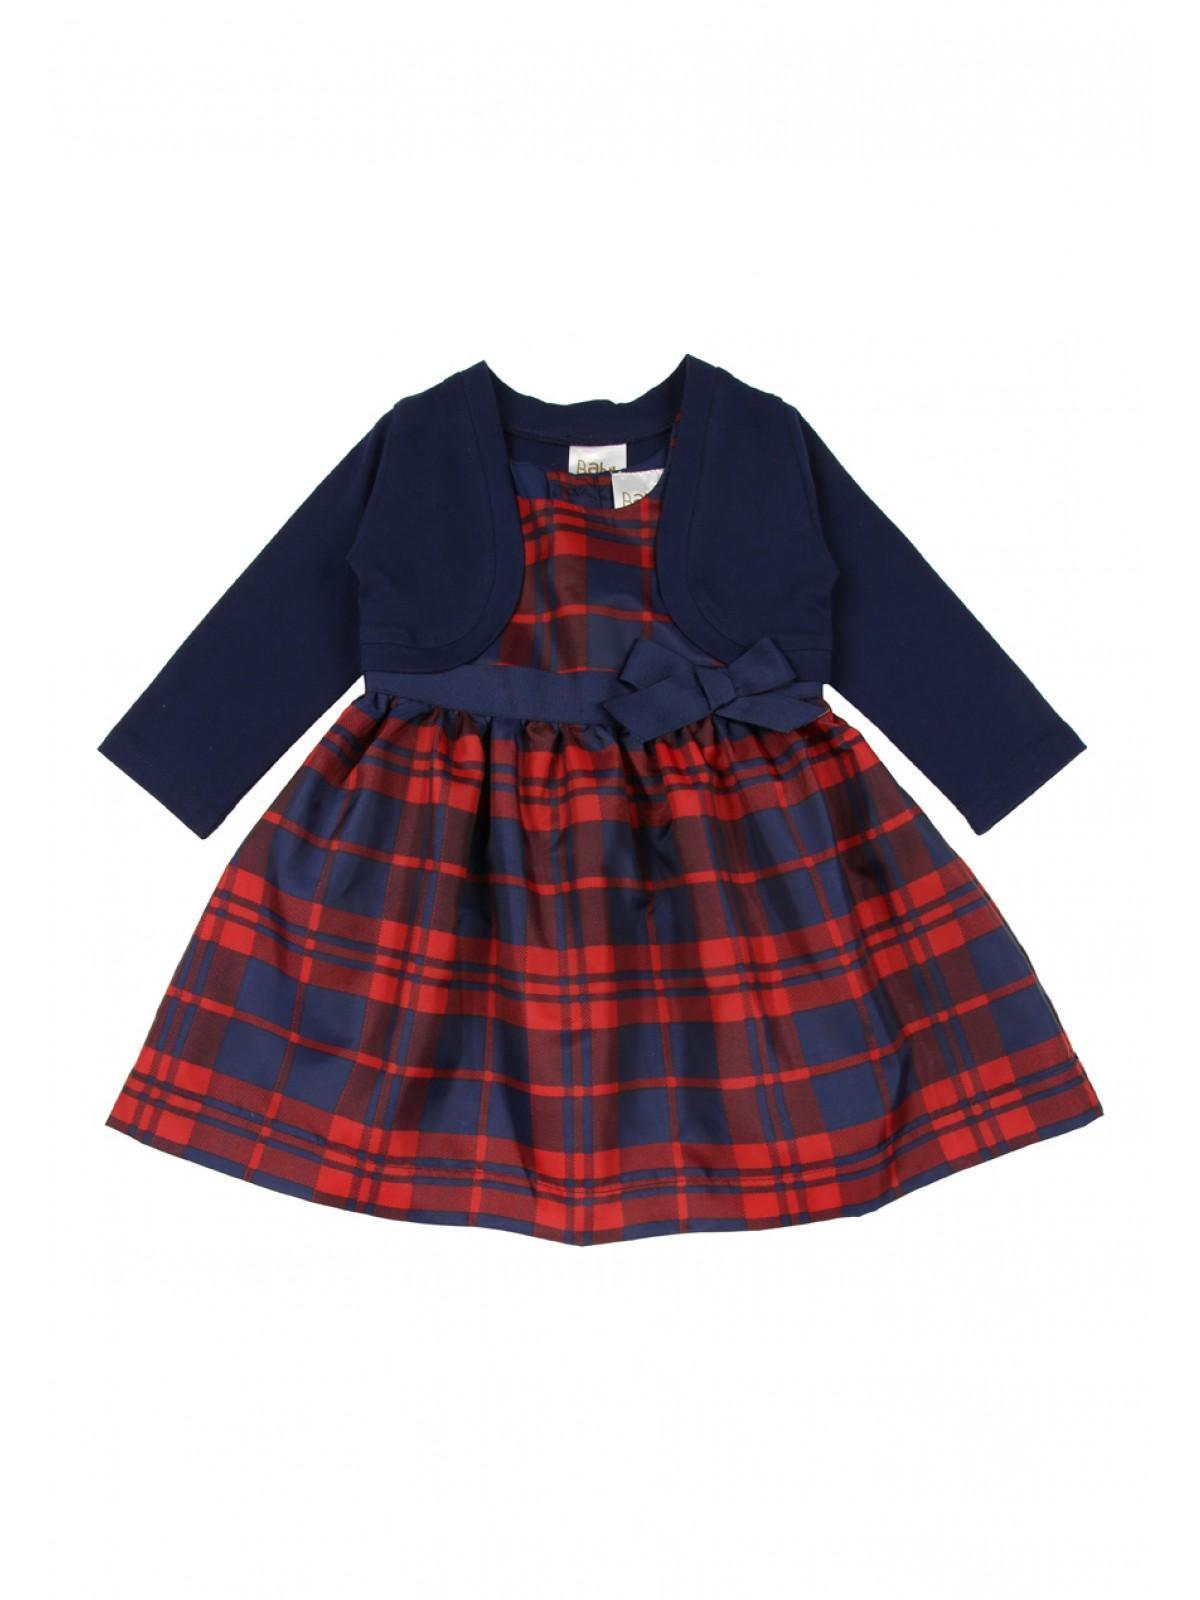 11ace965b764 Girls Baby Girls Tartan Dress and Shrug